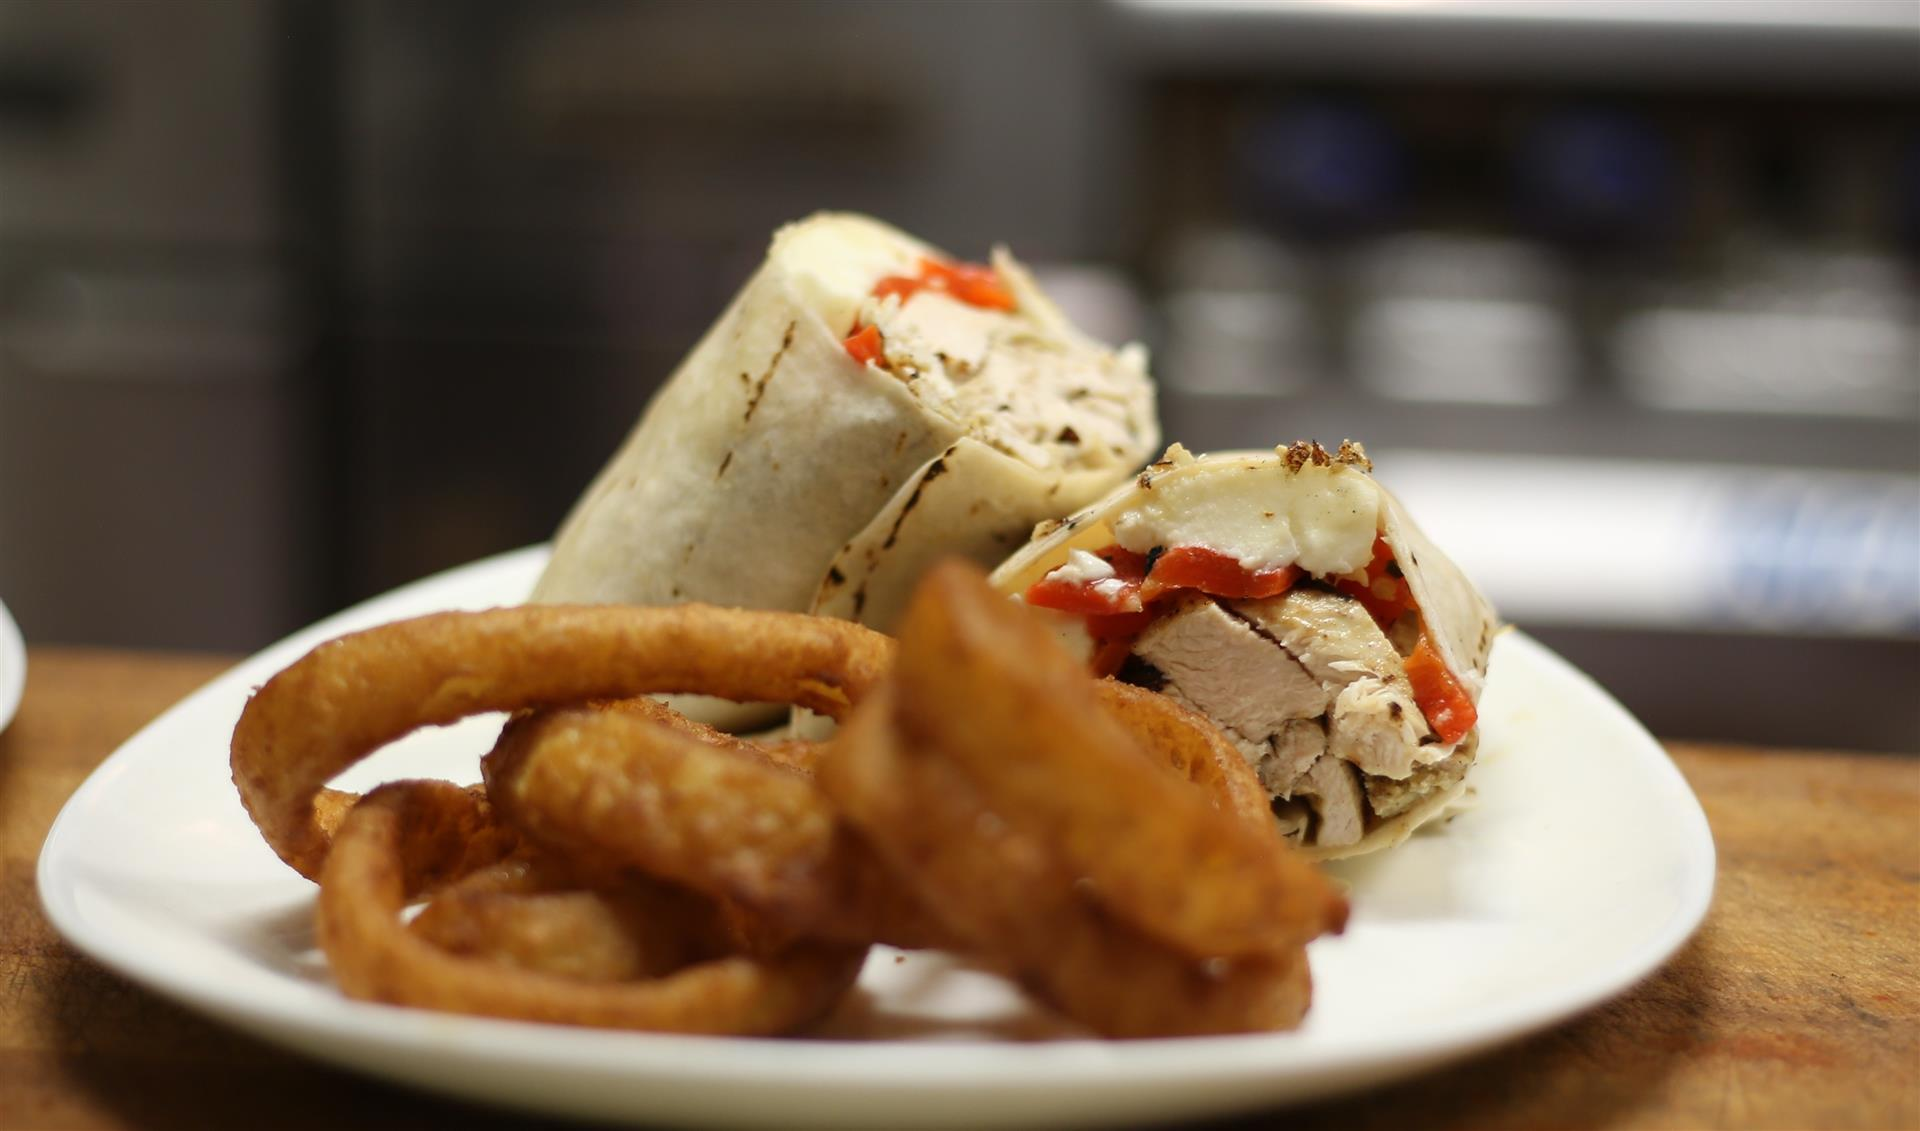 Grilled Chicken, Red peppers, Fresh Mozzarella in a Wrap, with onion rings.